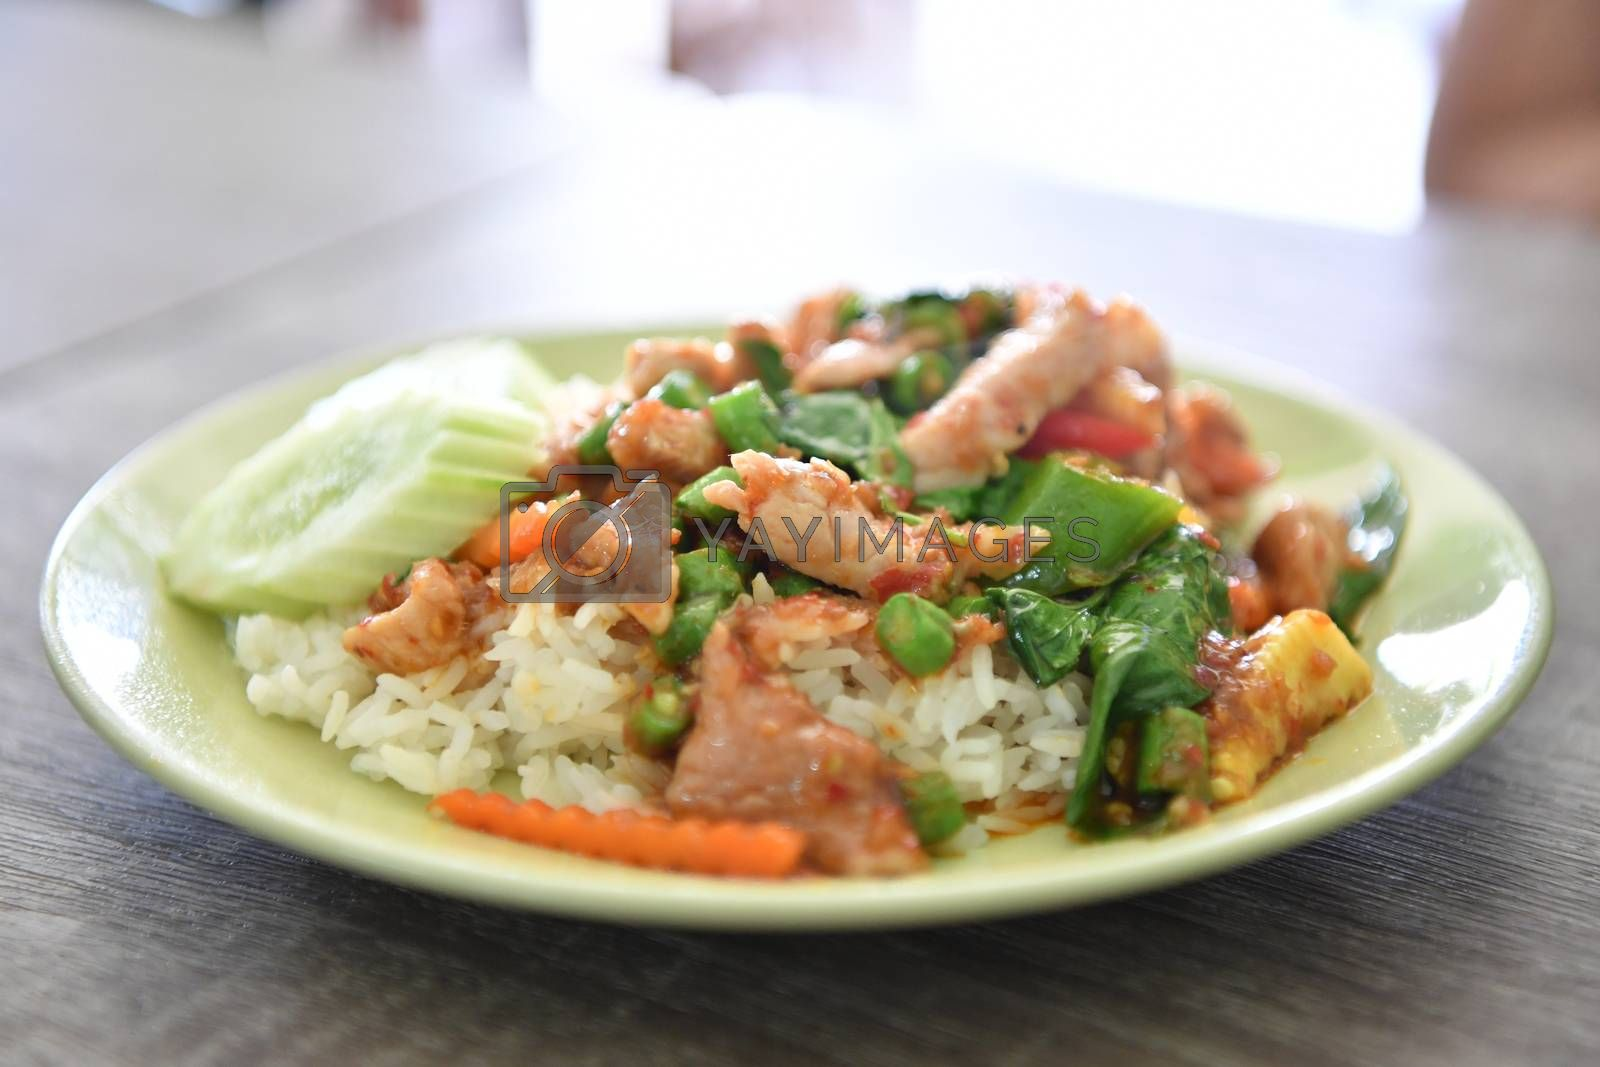 Stir fried pork and curry paste on rice, Thai food.